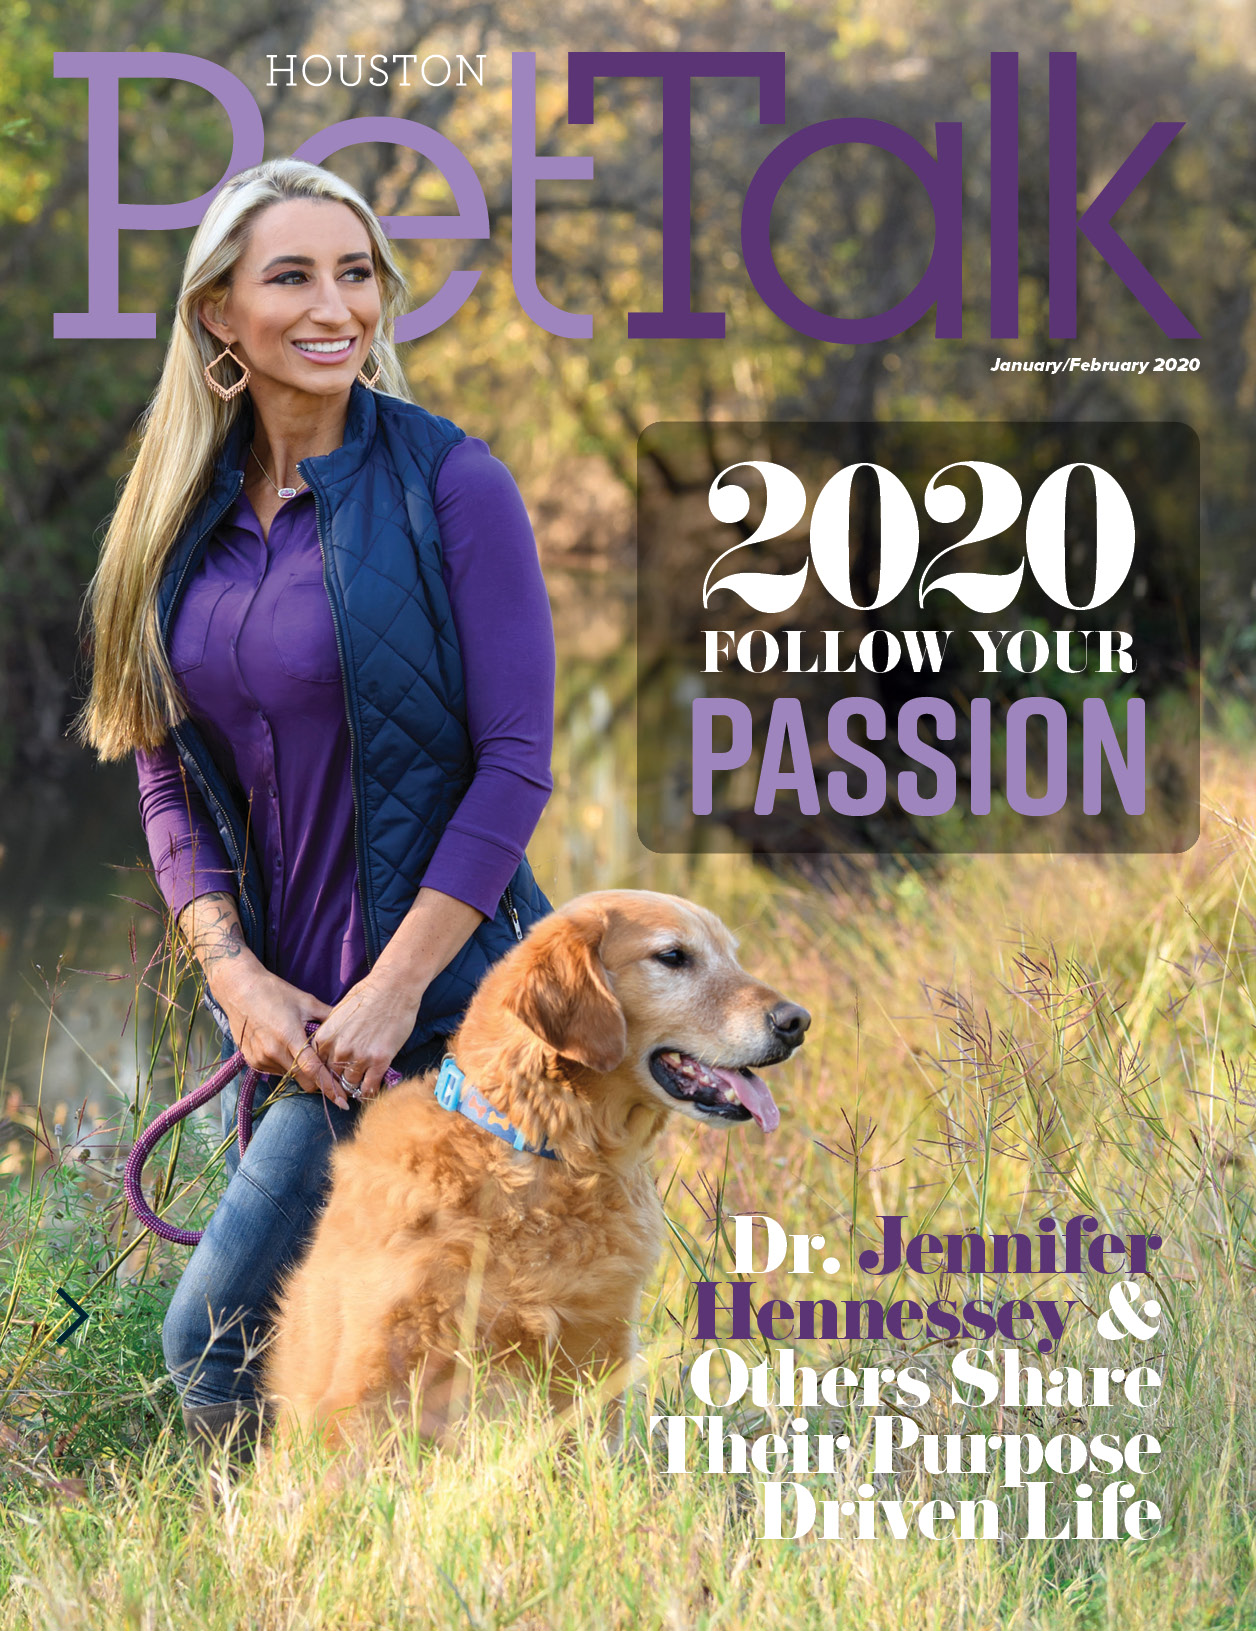 January/February 2020 Digital Issue of Houston PetTalk